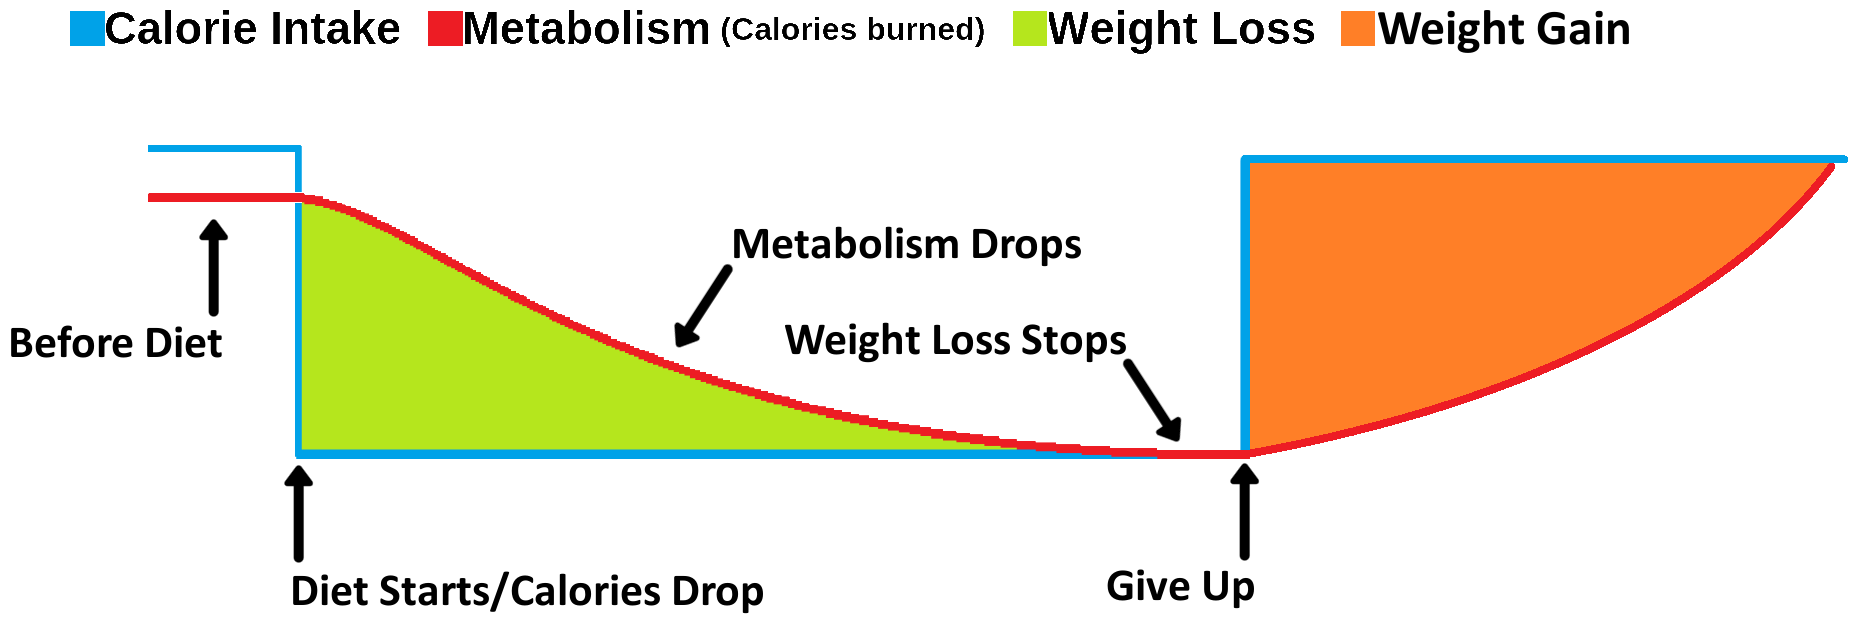 2 give up chart - labeled.png